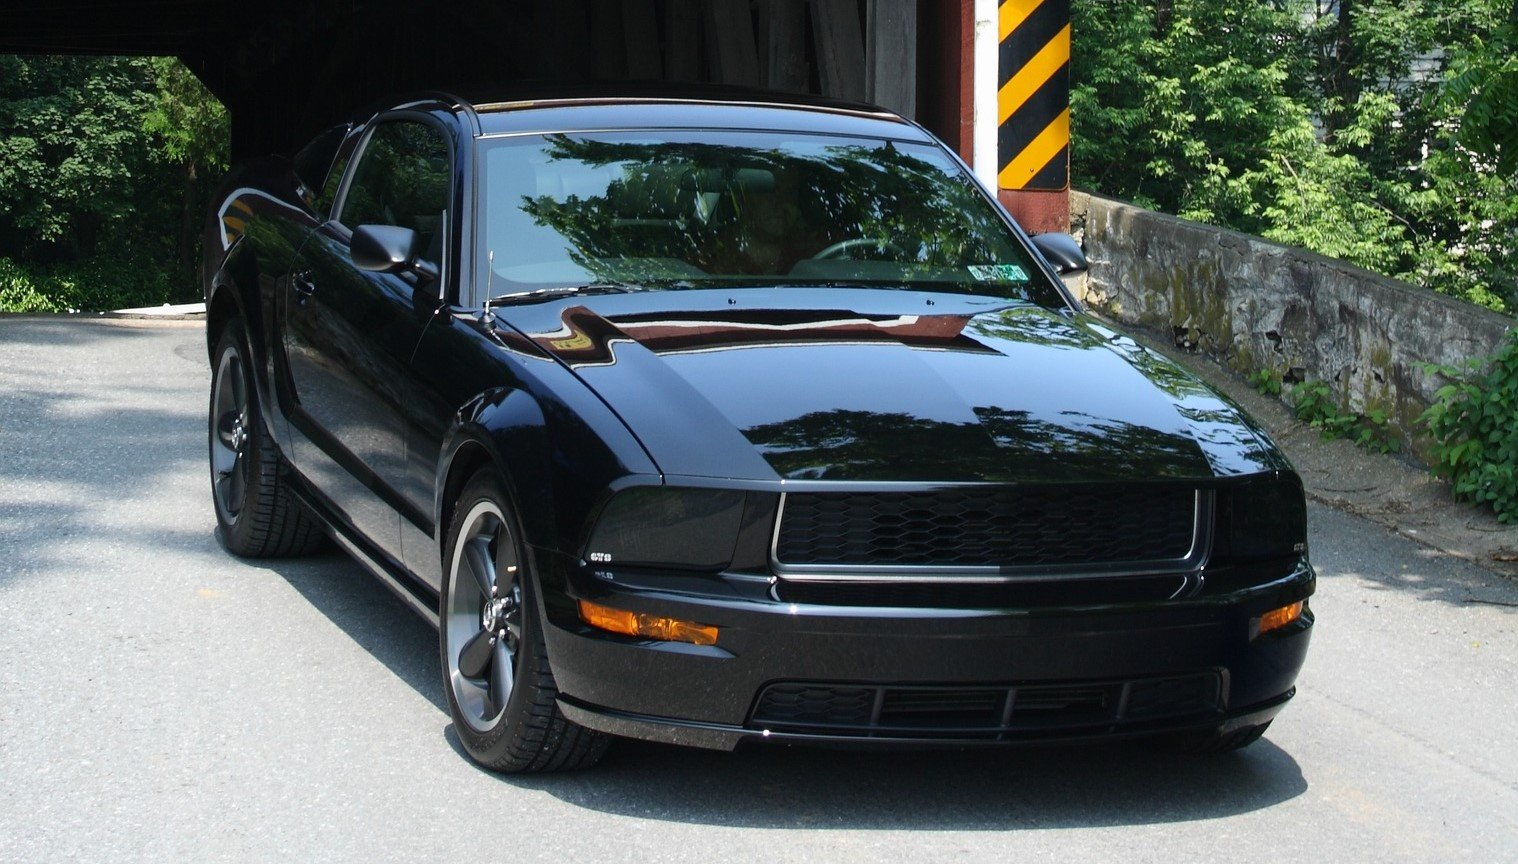 Classy Black Ford Mustang in Orlando